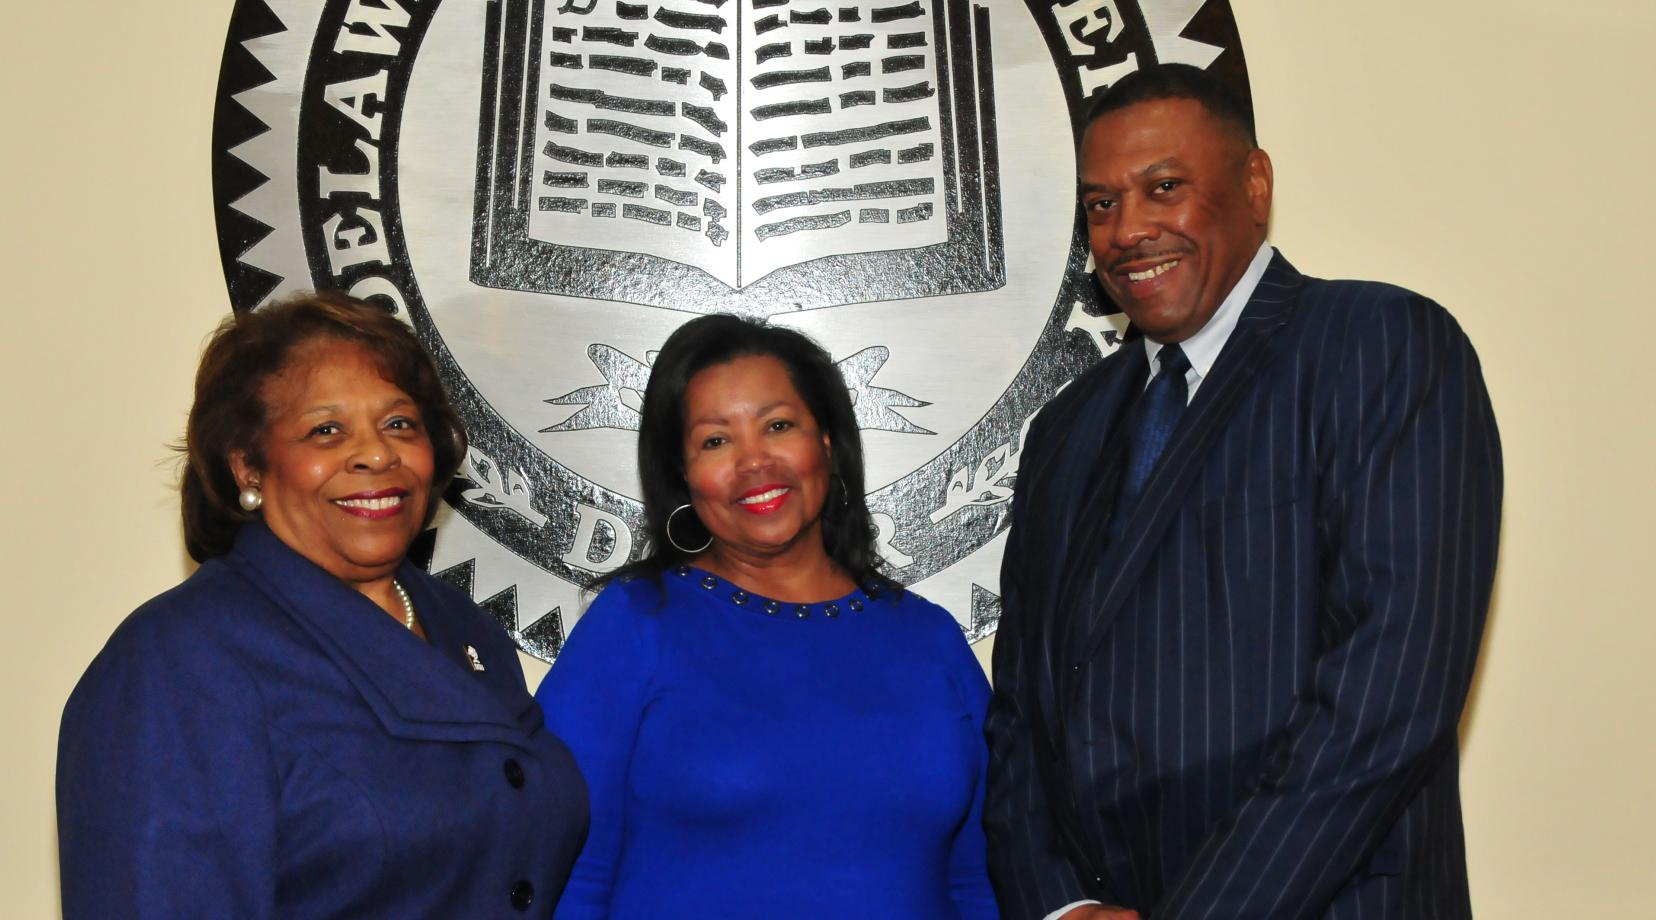 <p>The DSU Board of Trustees has selected Dr. Wilma Mishoe as the interim University president, Dr. Devona Williams as the board's interim chairwoman and John Ridgeway as interim vice chair. Those interim leadership responsibilities will commence when current DSU President Harry L. Williams leaves the institution in January to become the CEO/president of the Thurgood Marshall College Fund.</p>